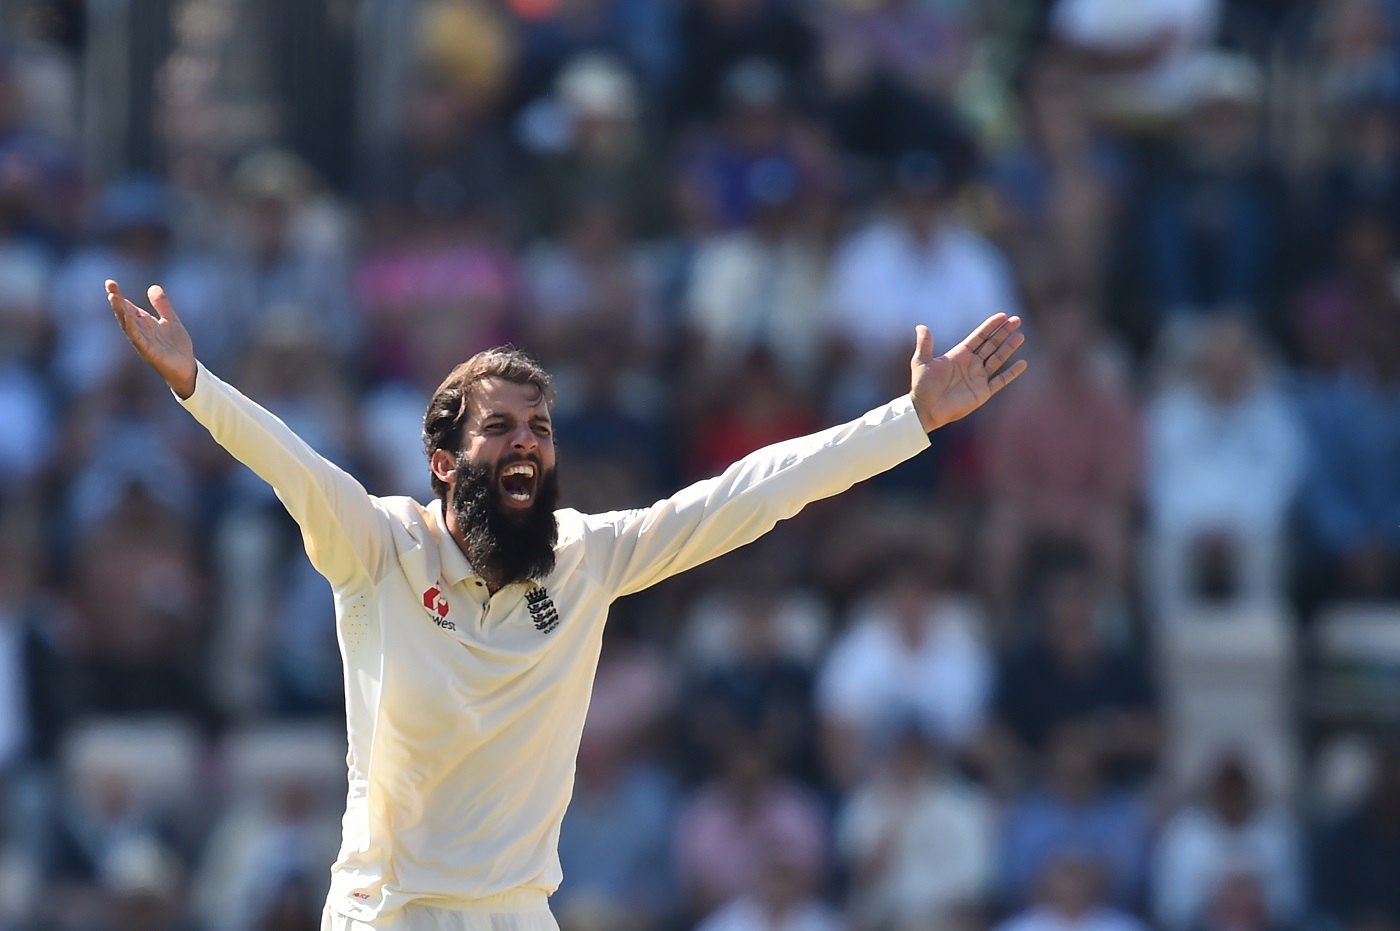 Australian Player Called Me Osama During 2015 Ashes, Alleges Moeen Ali